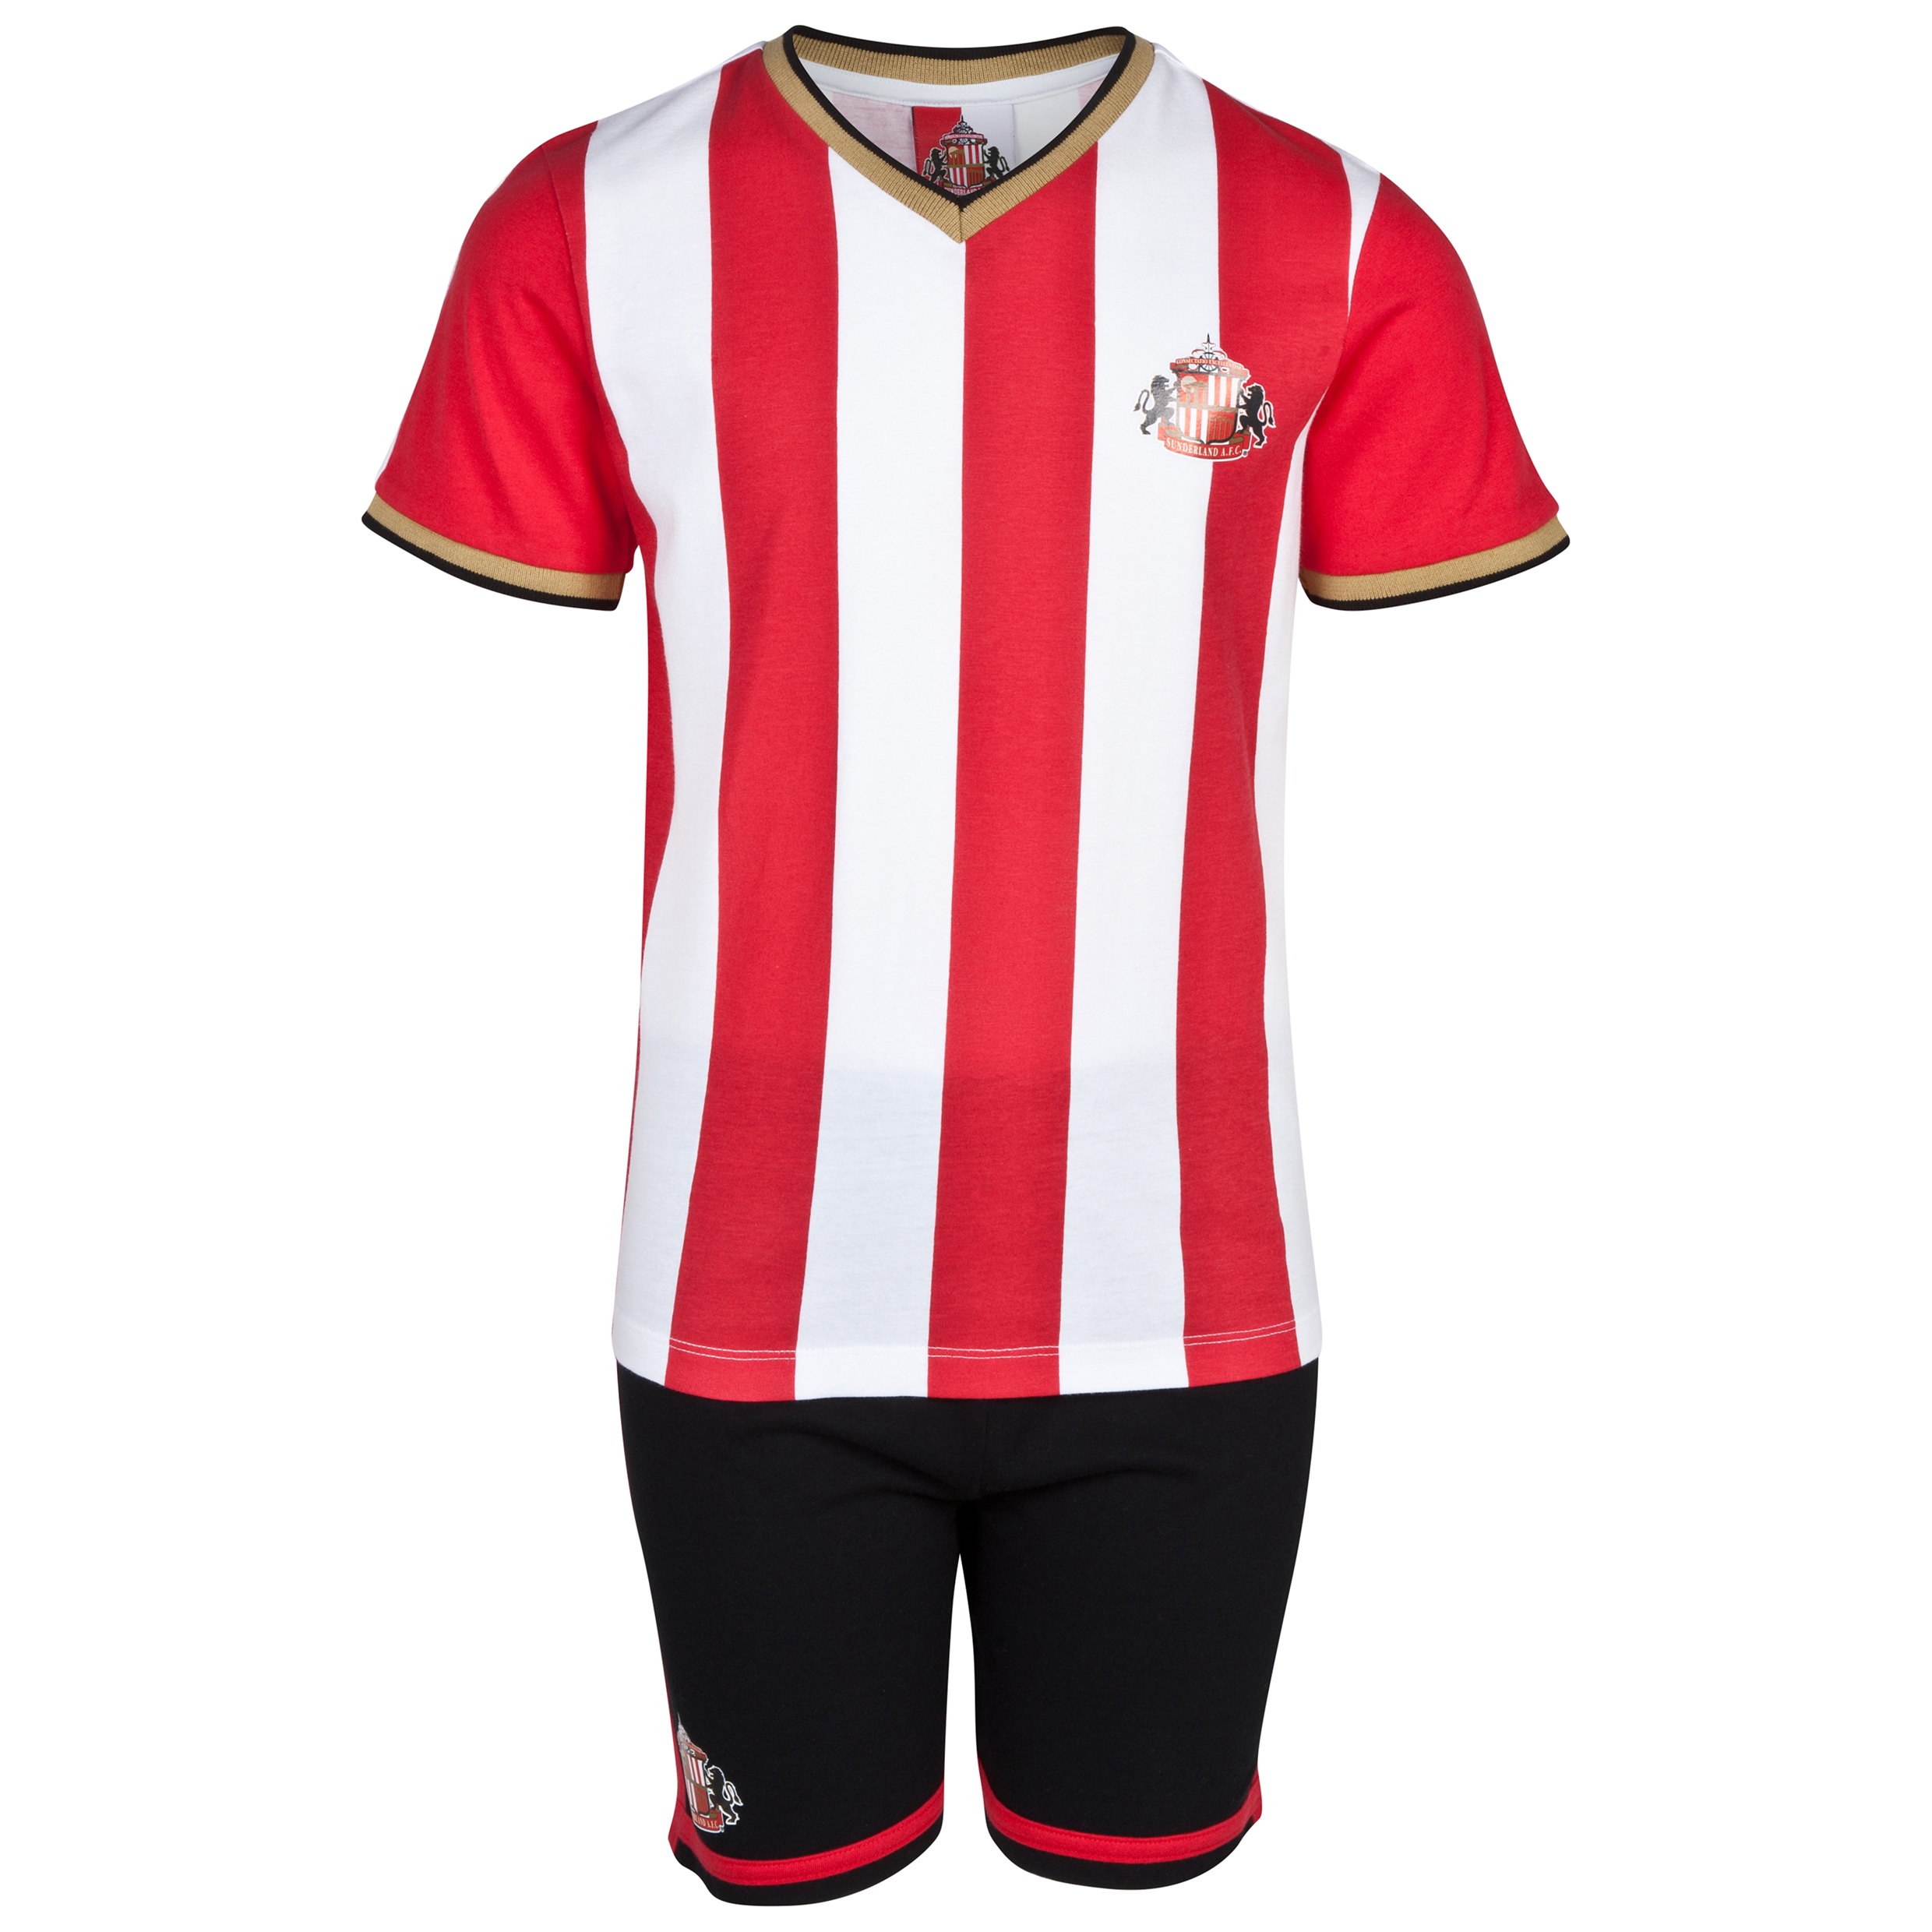 Sunderland 14/15 Kit Pyjamas - Red/White/Black - Boys